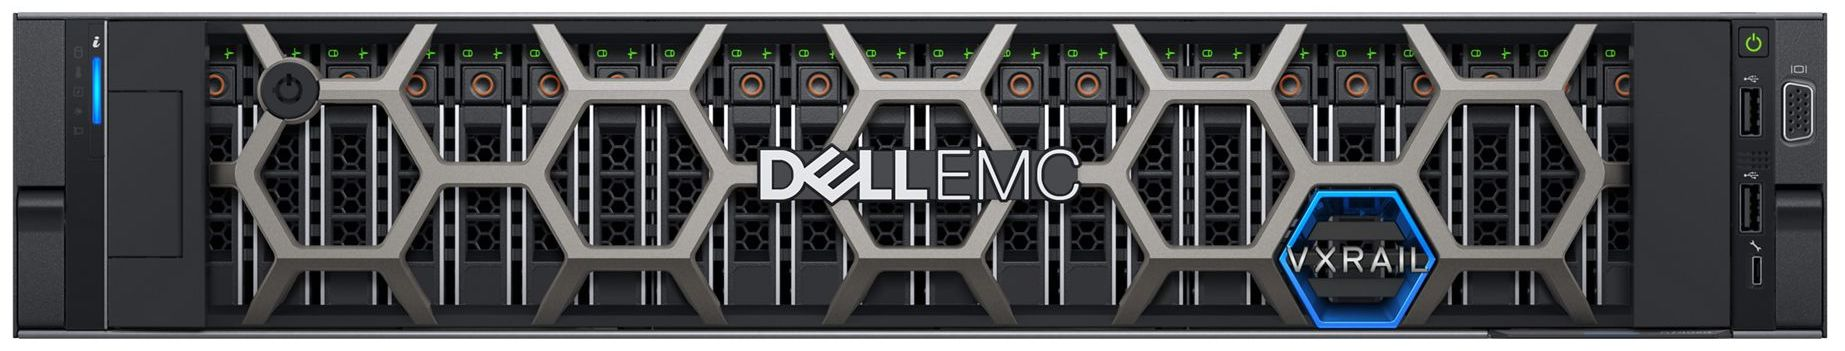 Dell EMC VxRail V-Series Front